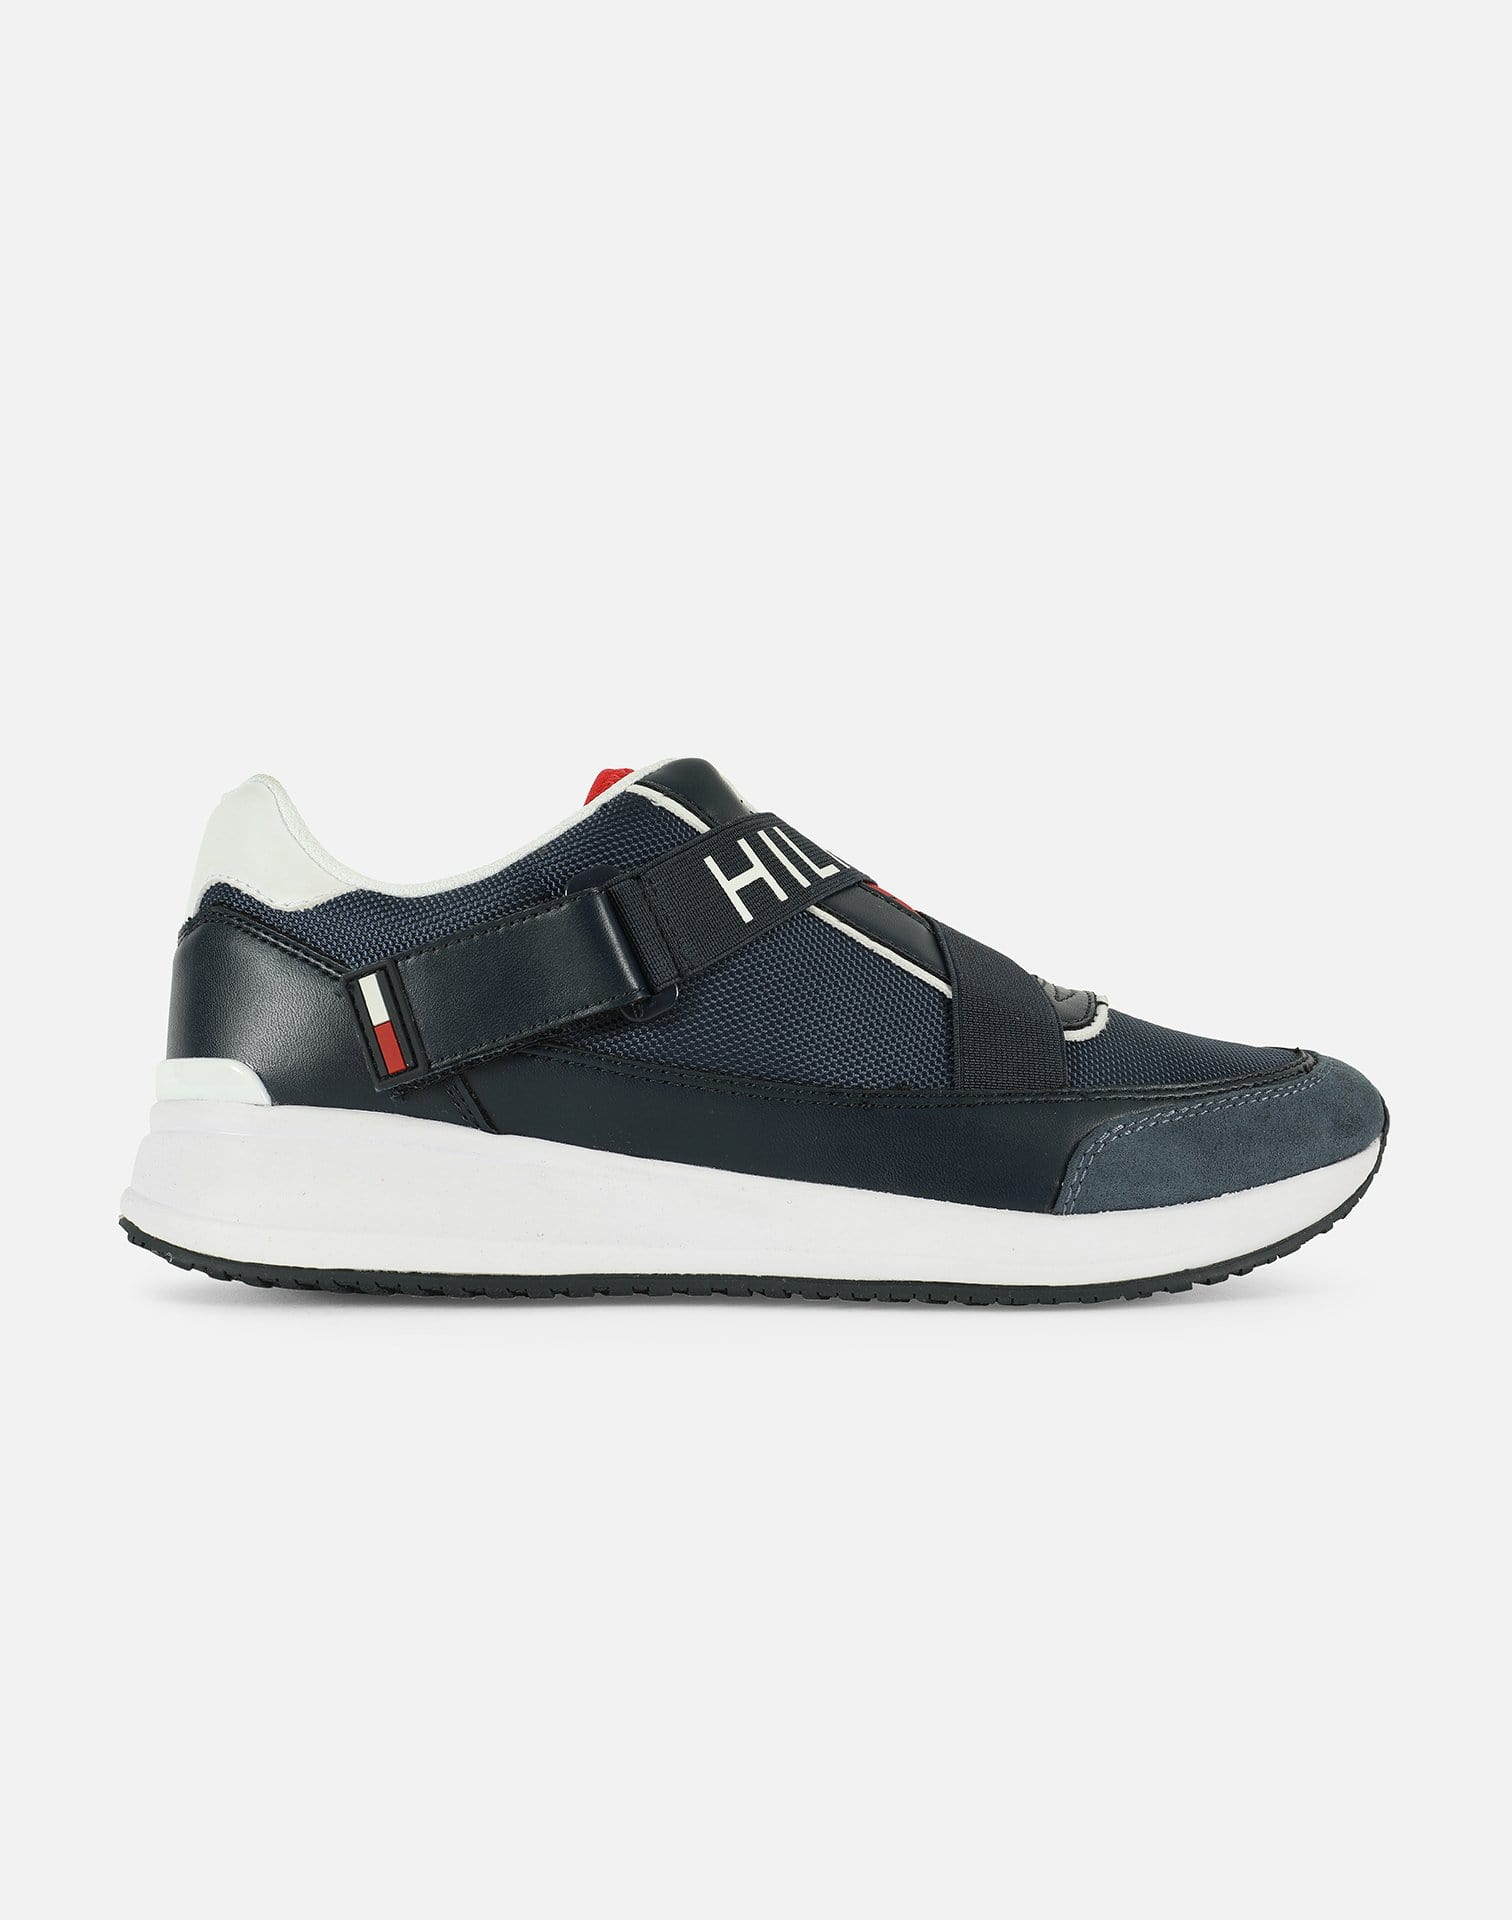 Tommy Hilfiger Men's Ronay Sip-On